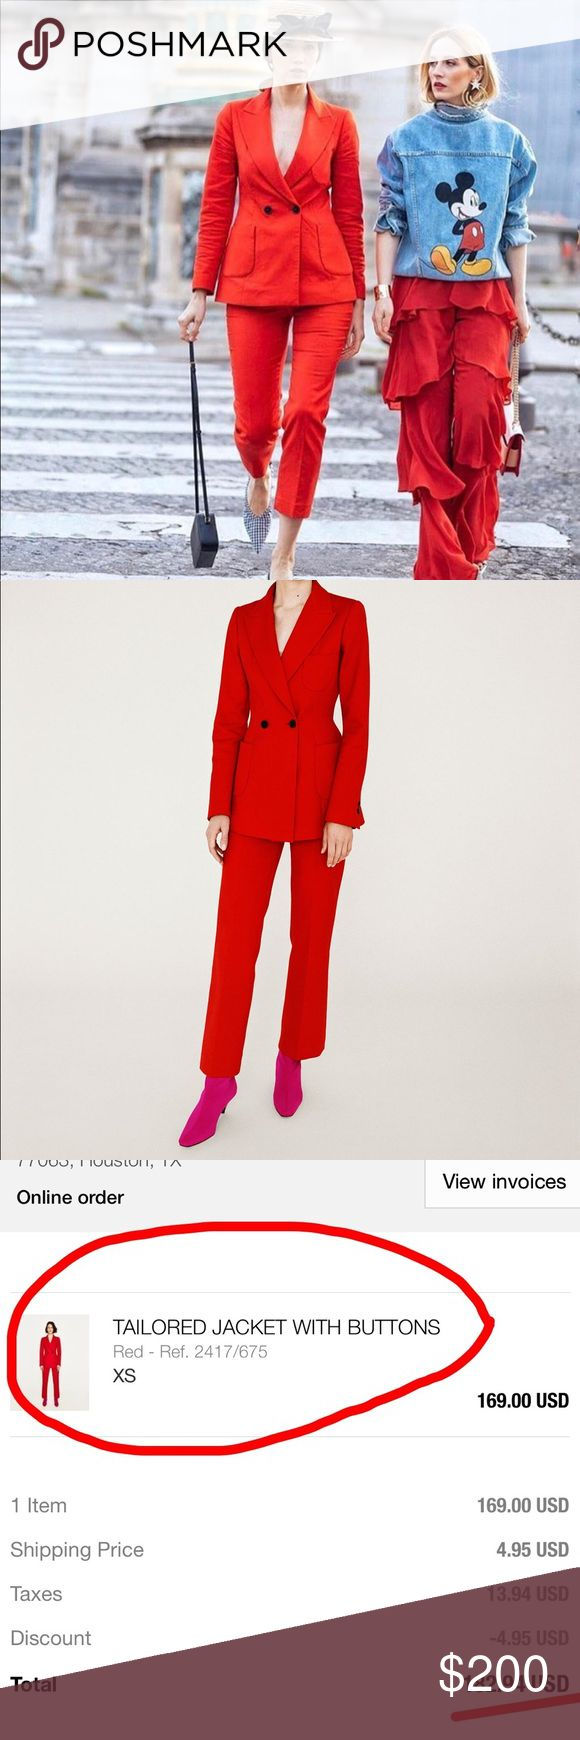 Brand New Red Zara Suit Brand New Red Zara Suit in XS. I purchased this suit few months ago and never got a chance to wear it so, it's just been sitting in my closet. I purchased the blazer online for $182 with taxes (I posted an image of the receipt.) I got the pants in store for about $86 with taxes. The suit is GORGEOUS. If you wear XS, it'll look like a tailored/custom made suit. You can dress it up with heels for NYE or any event or down with trainers and a tshirt inside.  Definitely…